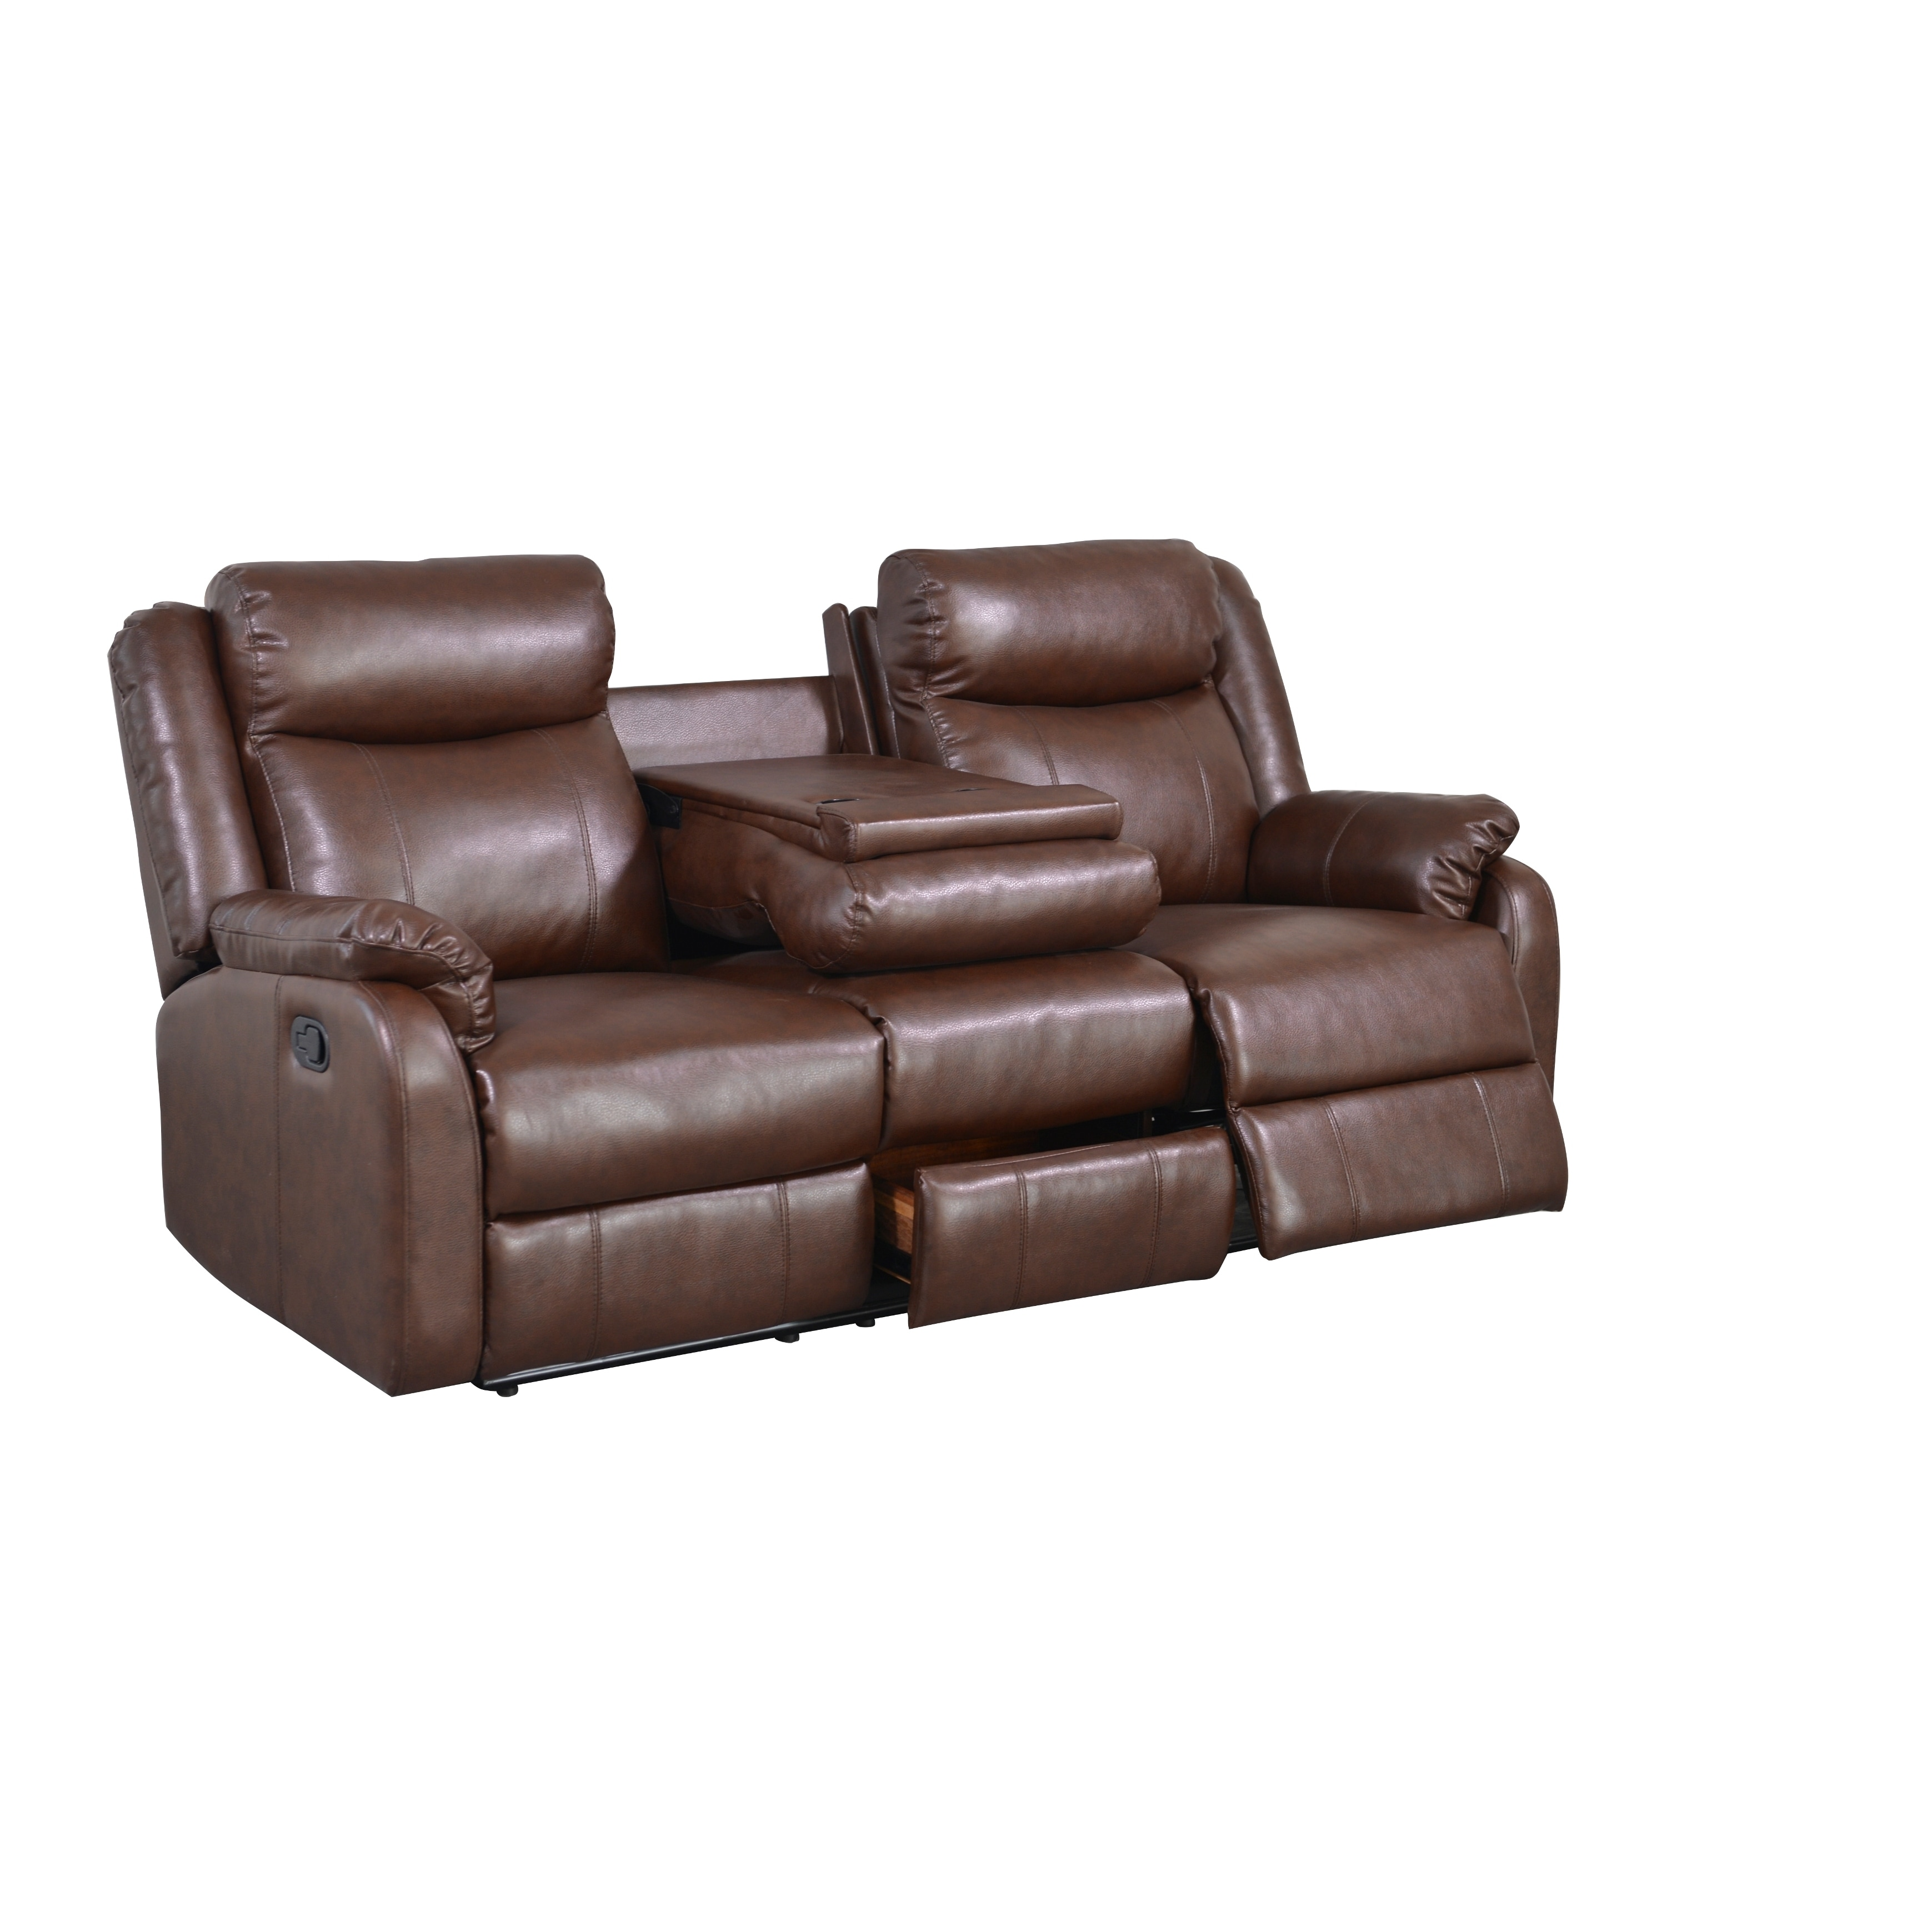 Global Brown Bonded Leather Double Recliner with Table Co...